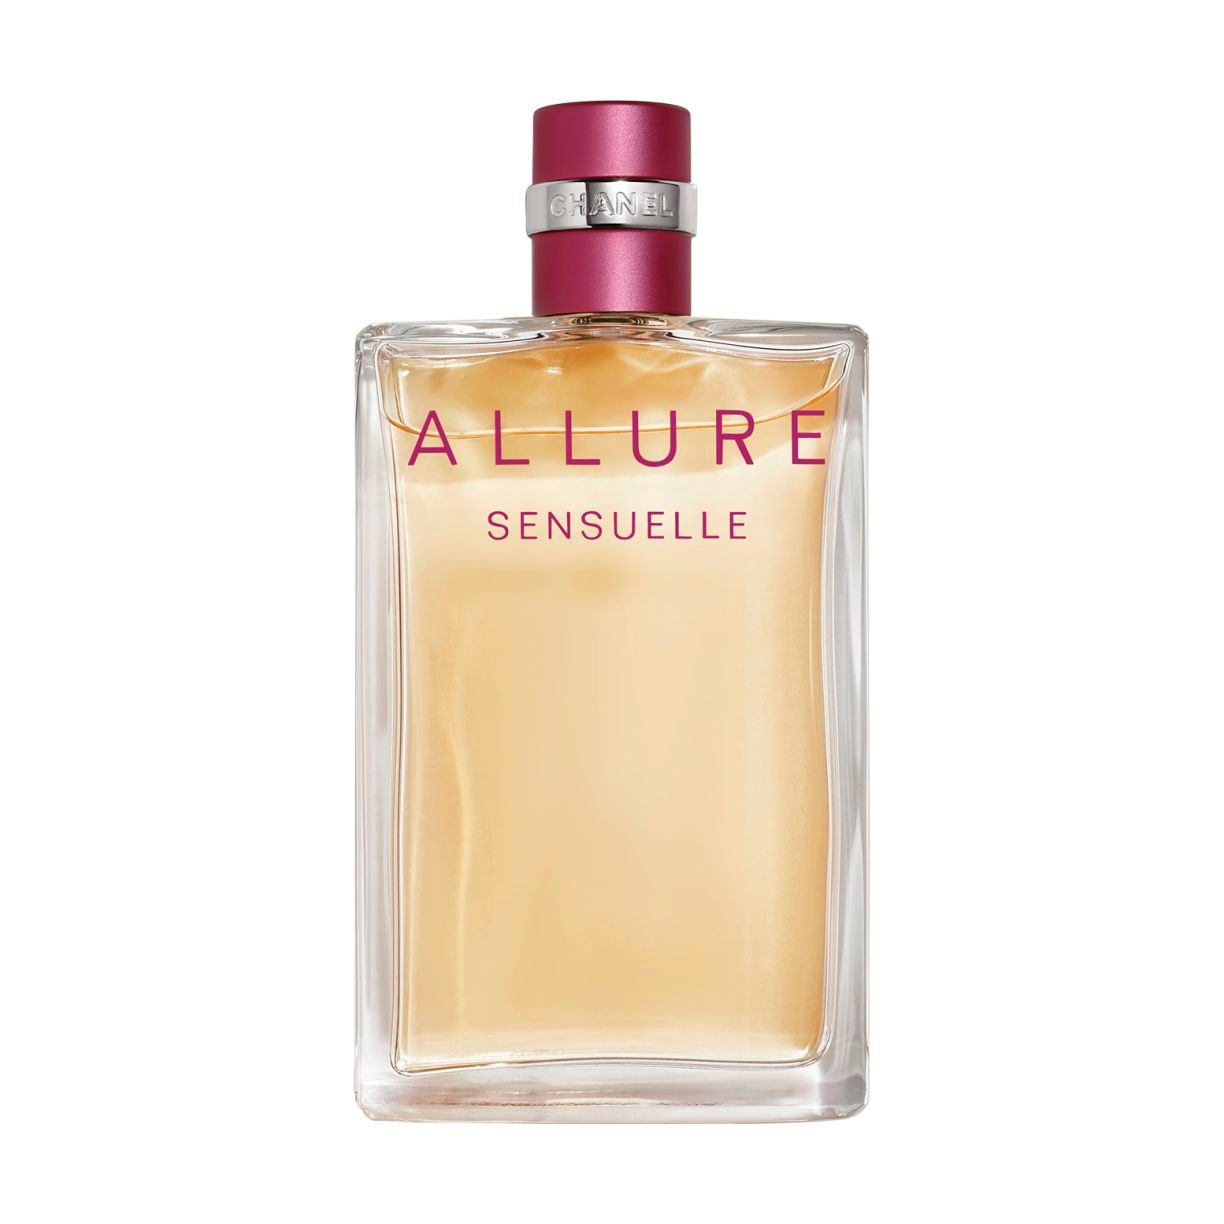 ALLURE SENSUELLE EAU DE TOILETTE SPRAY 50ML